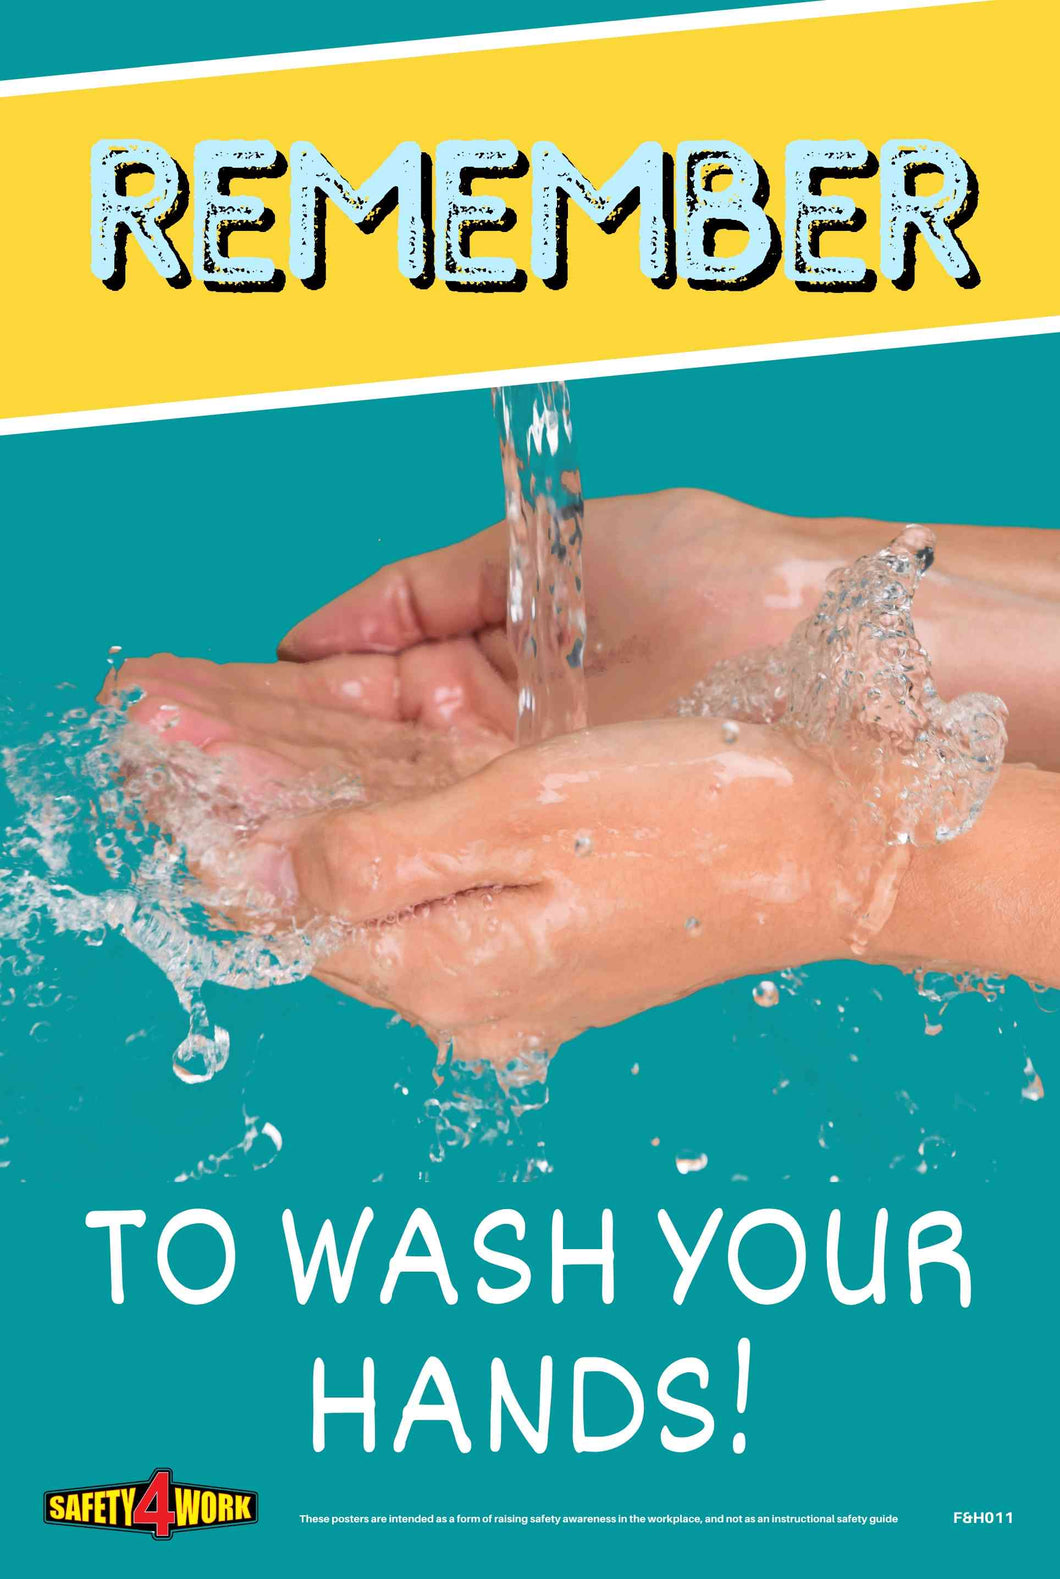 REMEMBER TO WASH YOUR HANDS A4 POSTER- FREE DIGITAL DOWNLOAD APRIL 2020(PDF)